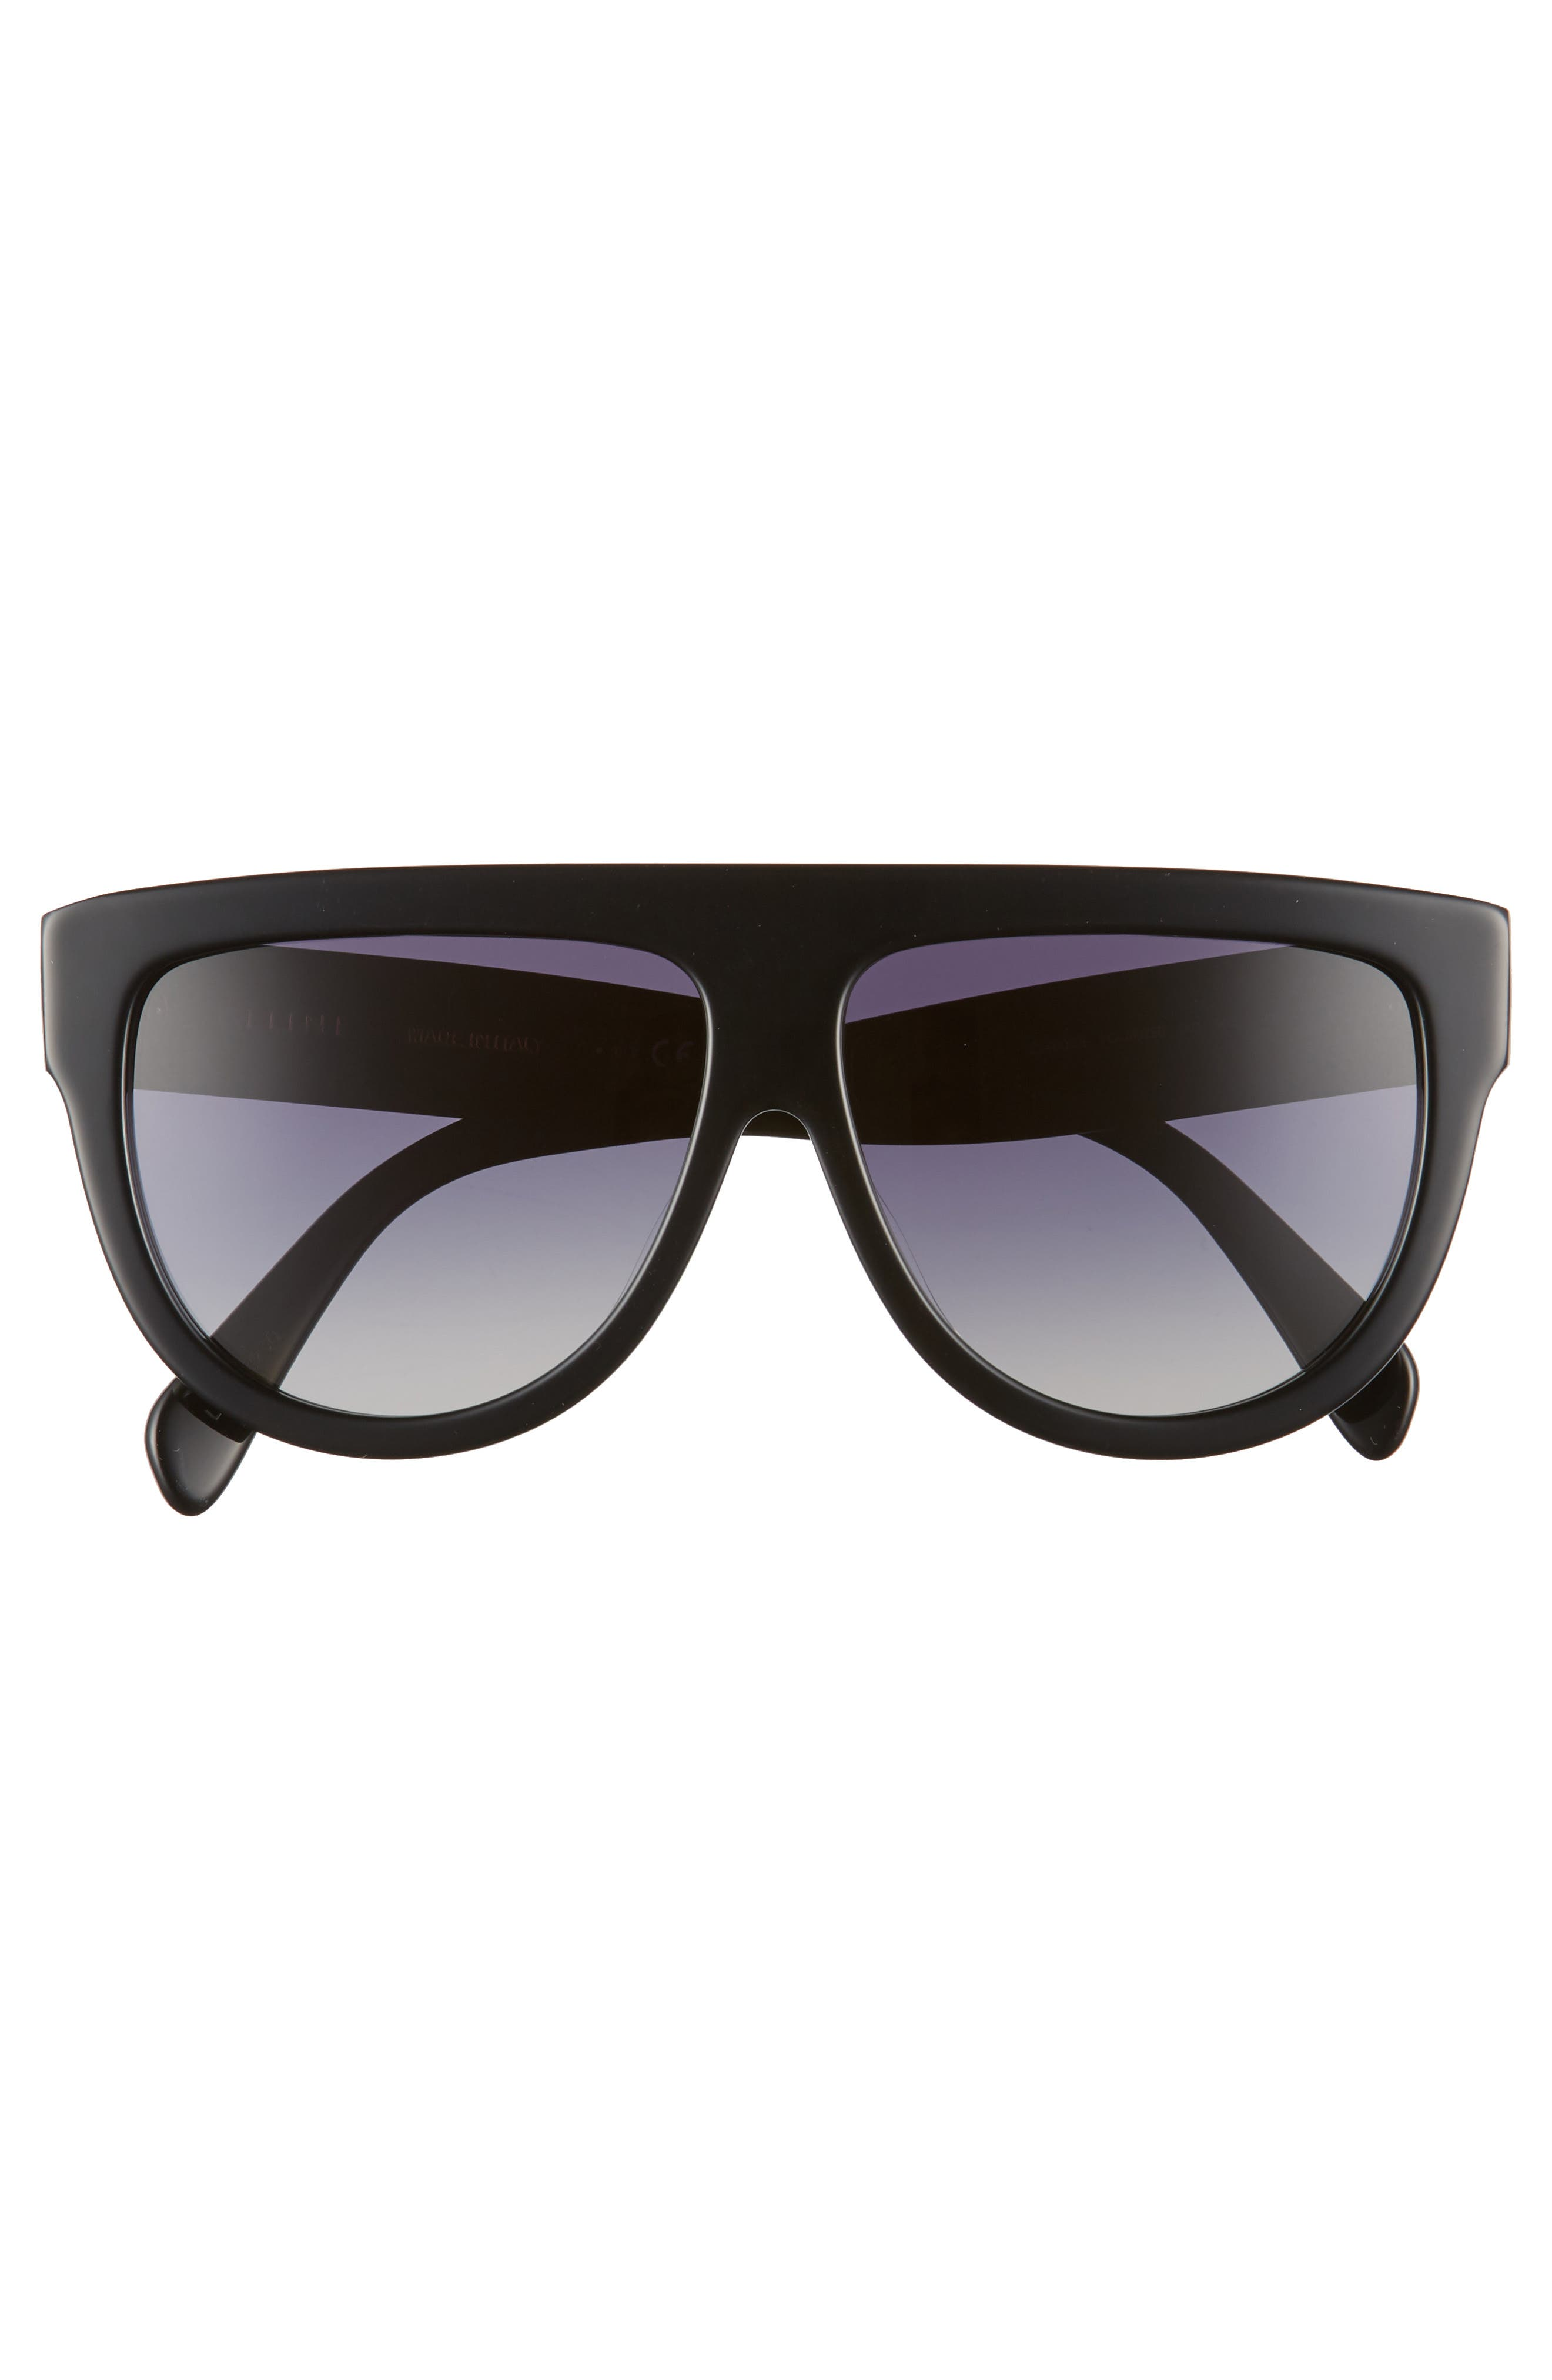 Special Fit 60mm Polarized Gradient Flat Top Sunglasses,                             Alternate thumbnail 4, color,                             001